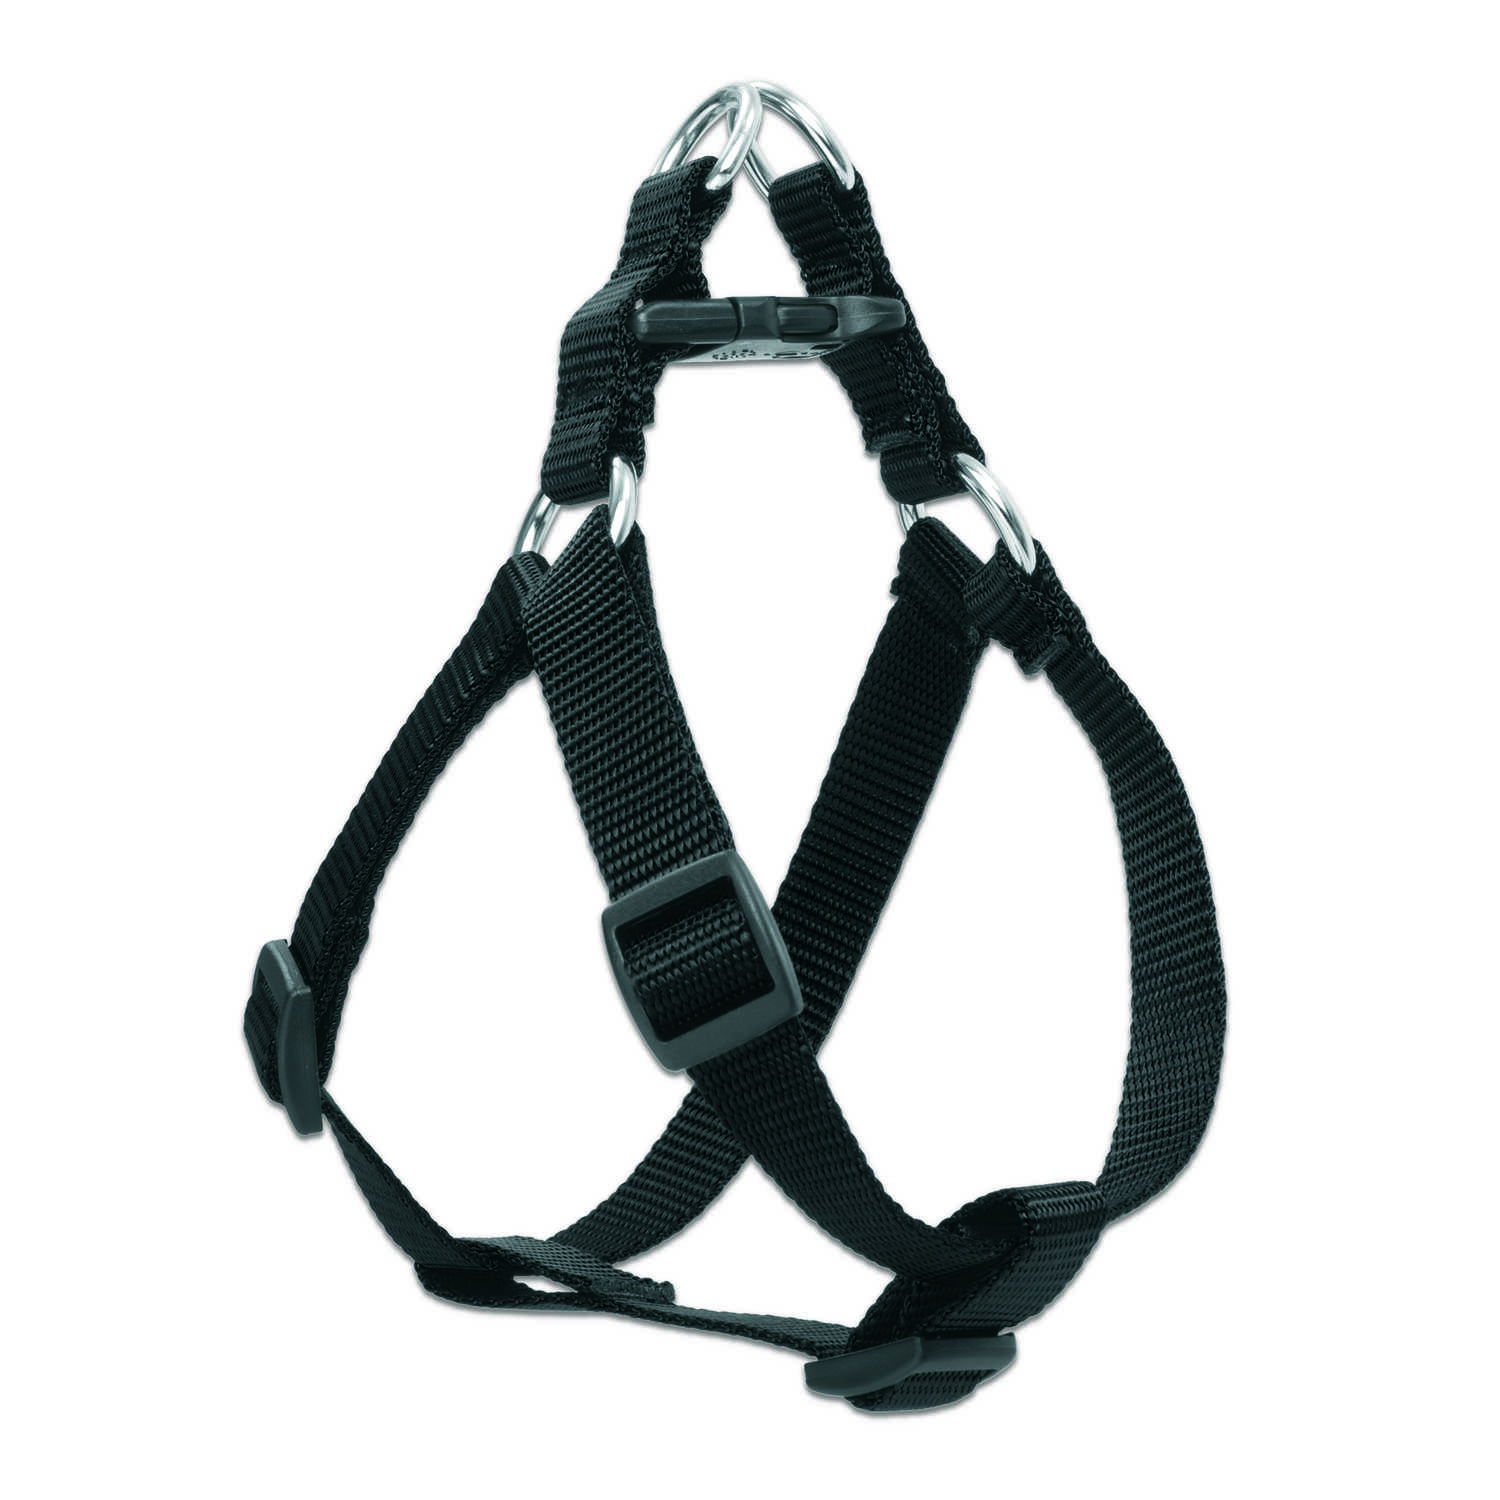 Lupine Pet  Basic Solids  Black  Black  Nylon  Dog  Harness